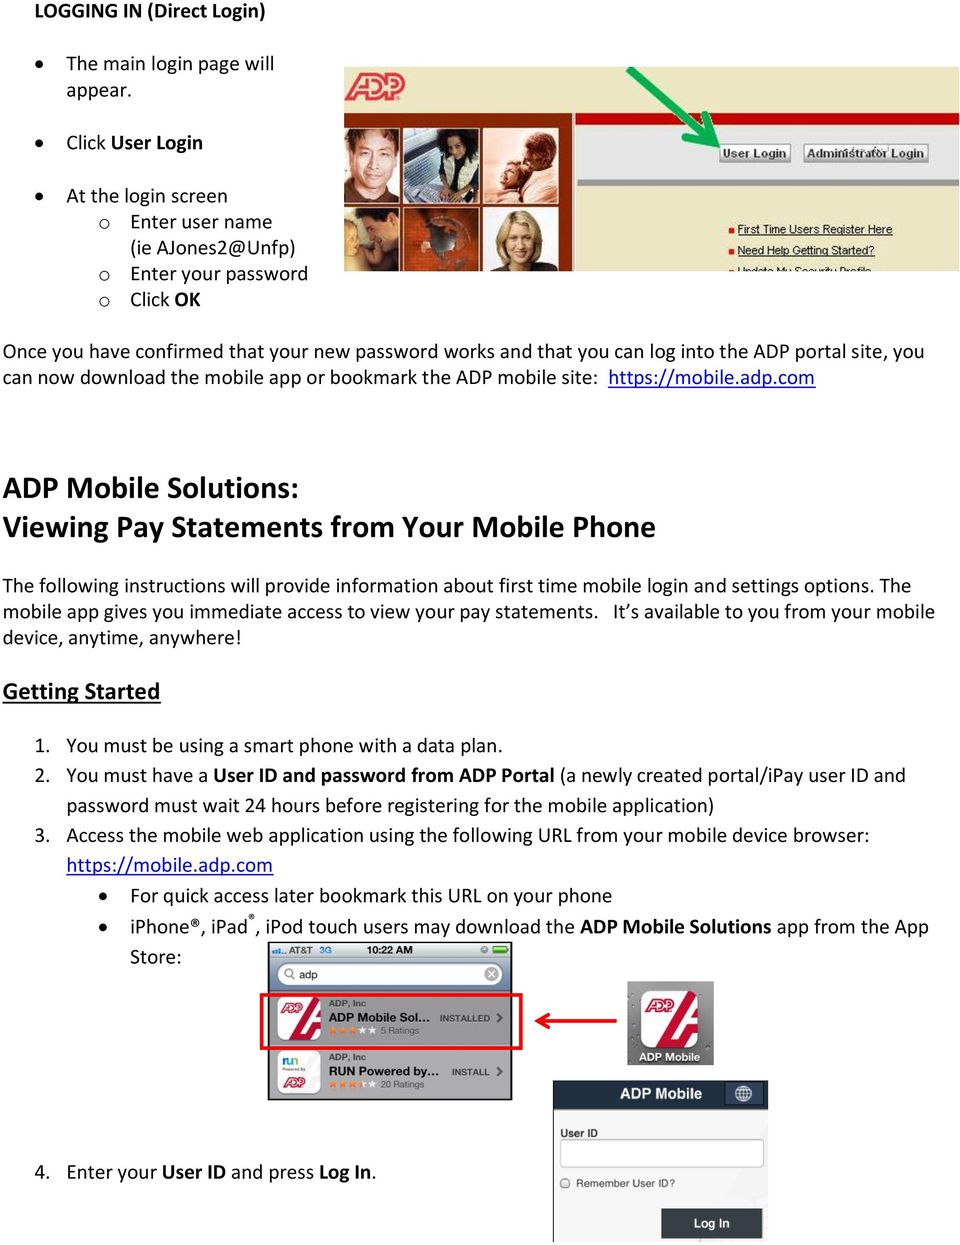 ADP Mobile Solutions: Register to use the ADP Mobile App - PDF